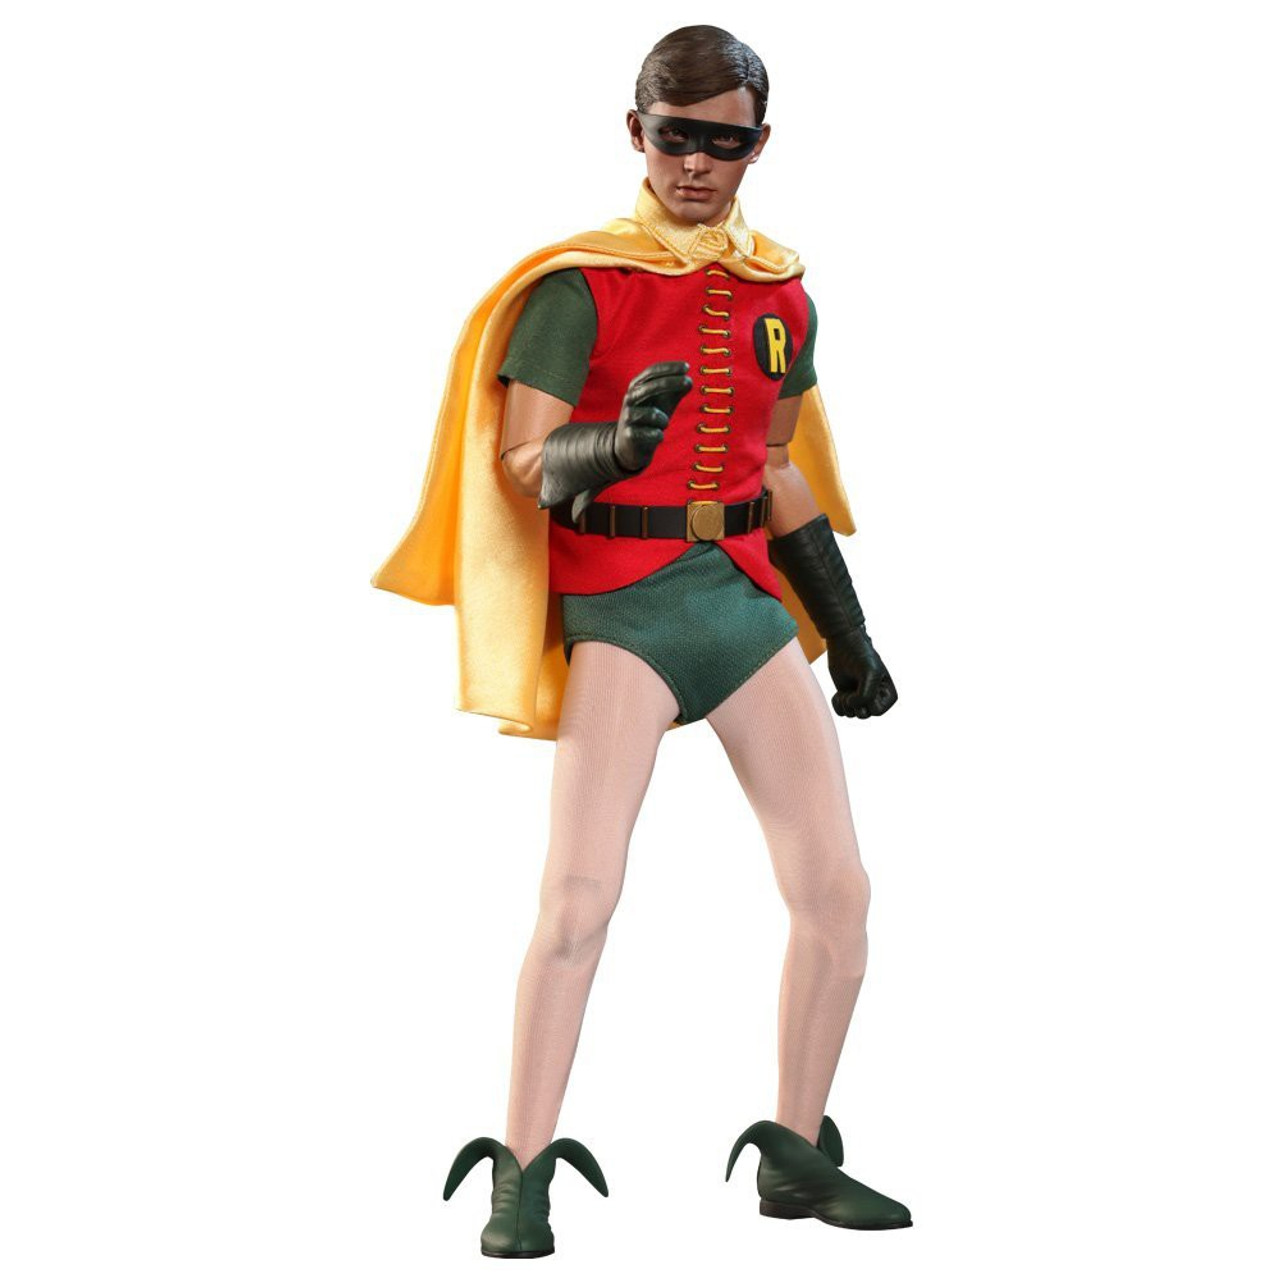 Batman 1966 TV Series Movie Masterpiece Robin Collectible Figure